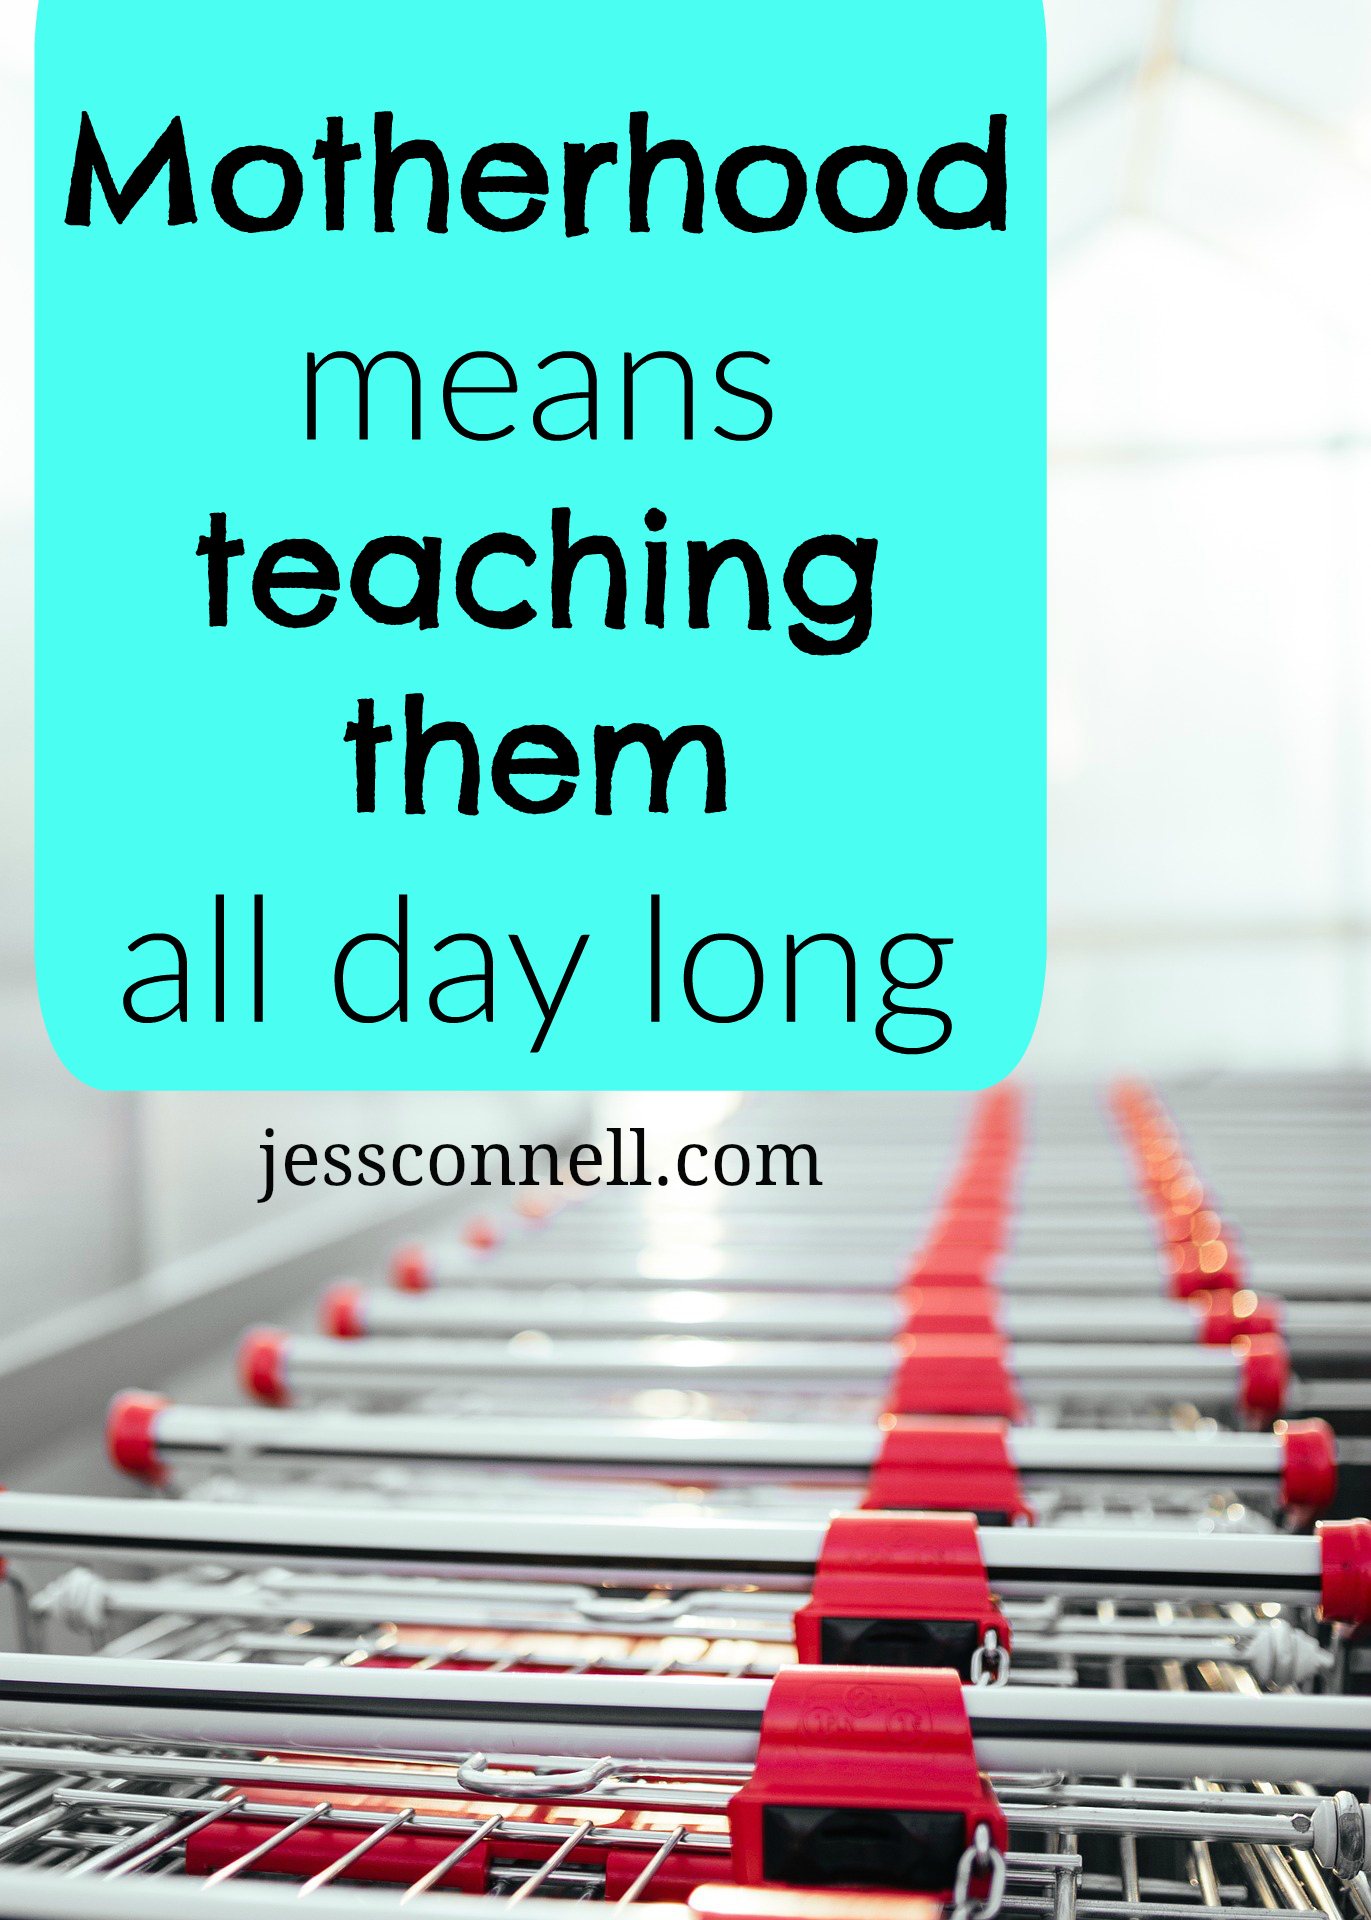 Motherhood Means Teaching Them All Day Long // jessconnell.com